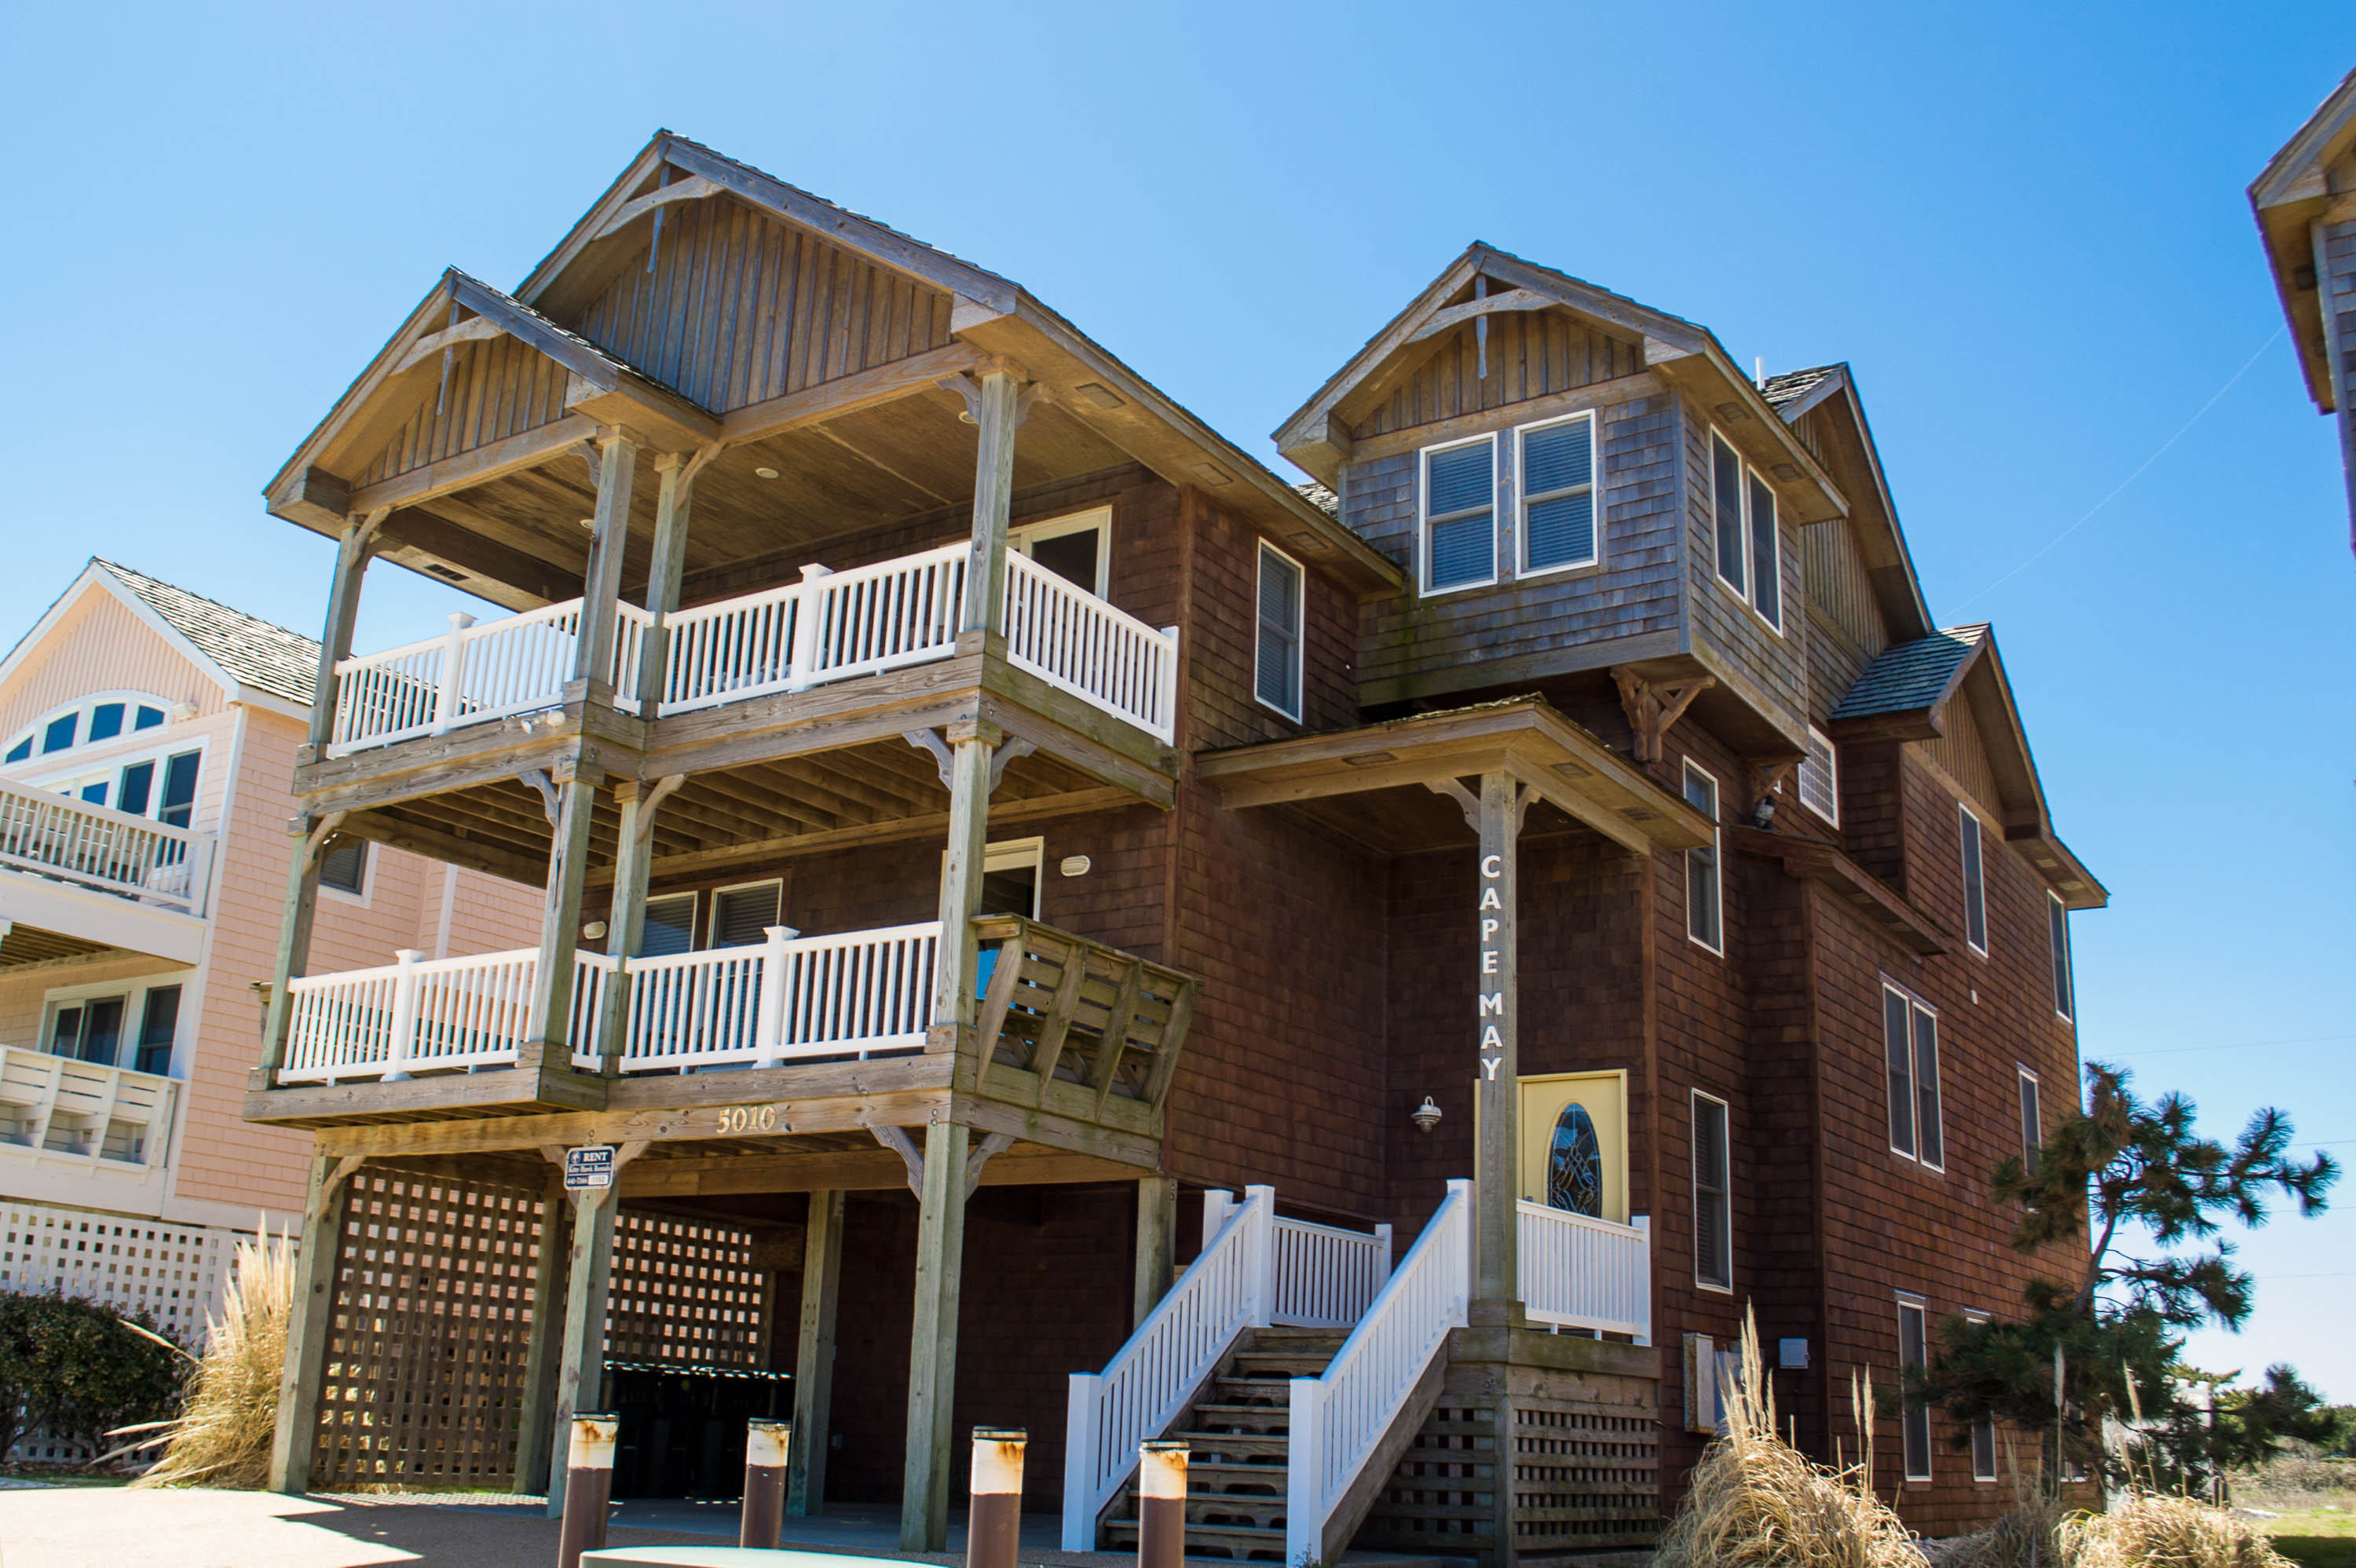 8 Bedrooms  7 Full and 2 Half Baths Outer banks vacation rental amenities. Outer Banks Beach House Rentals   Outer Banks Vacation Rentals